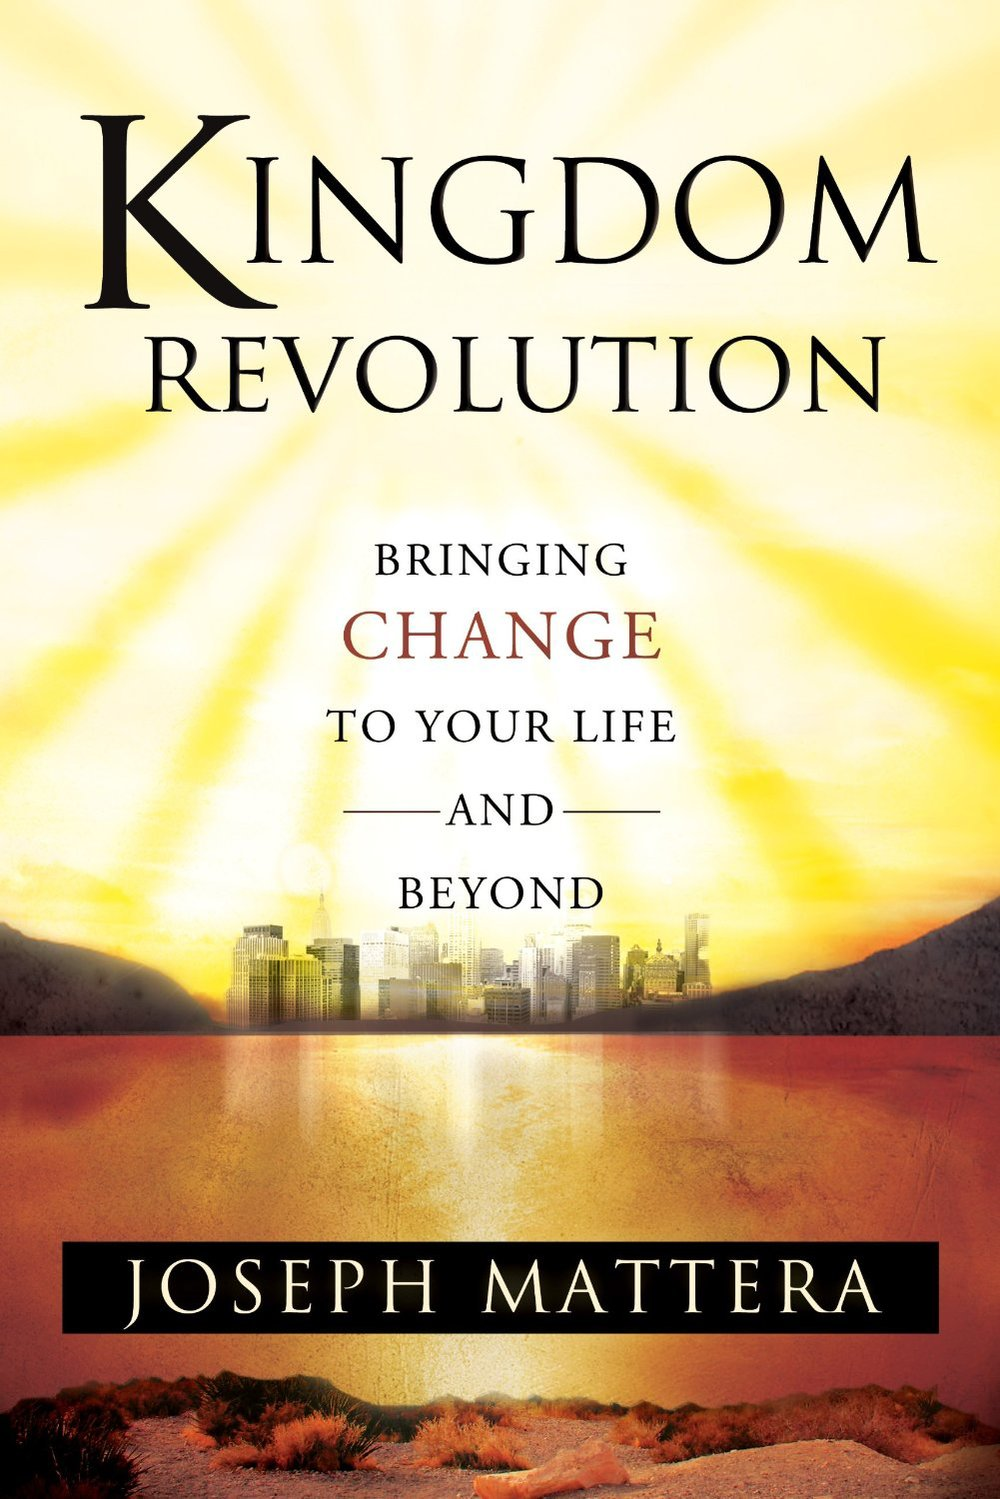 Kingdom Revolution Joseph Mattera